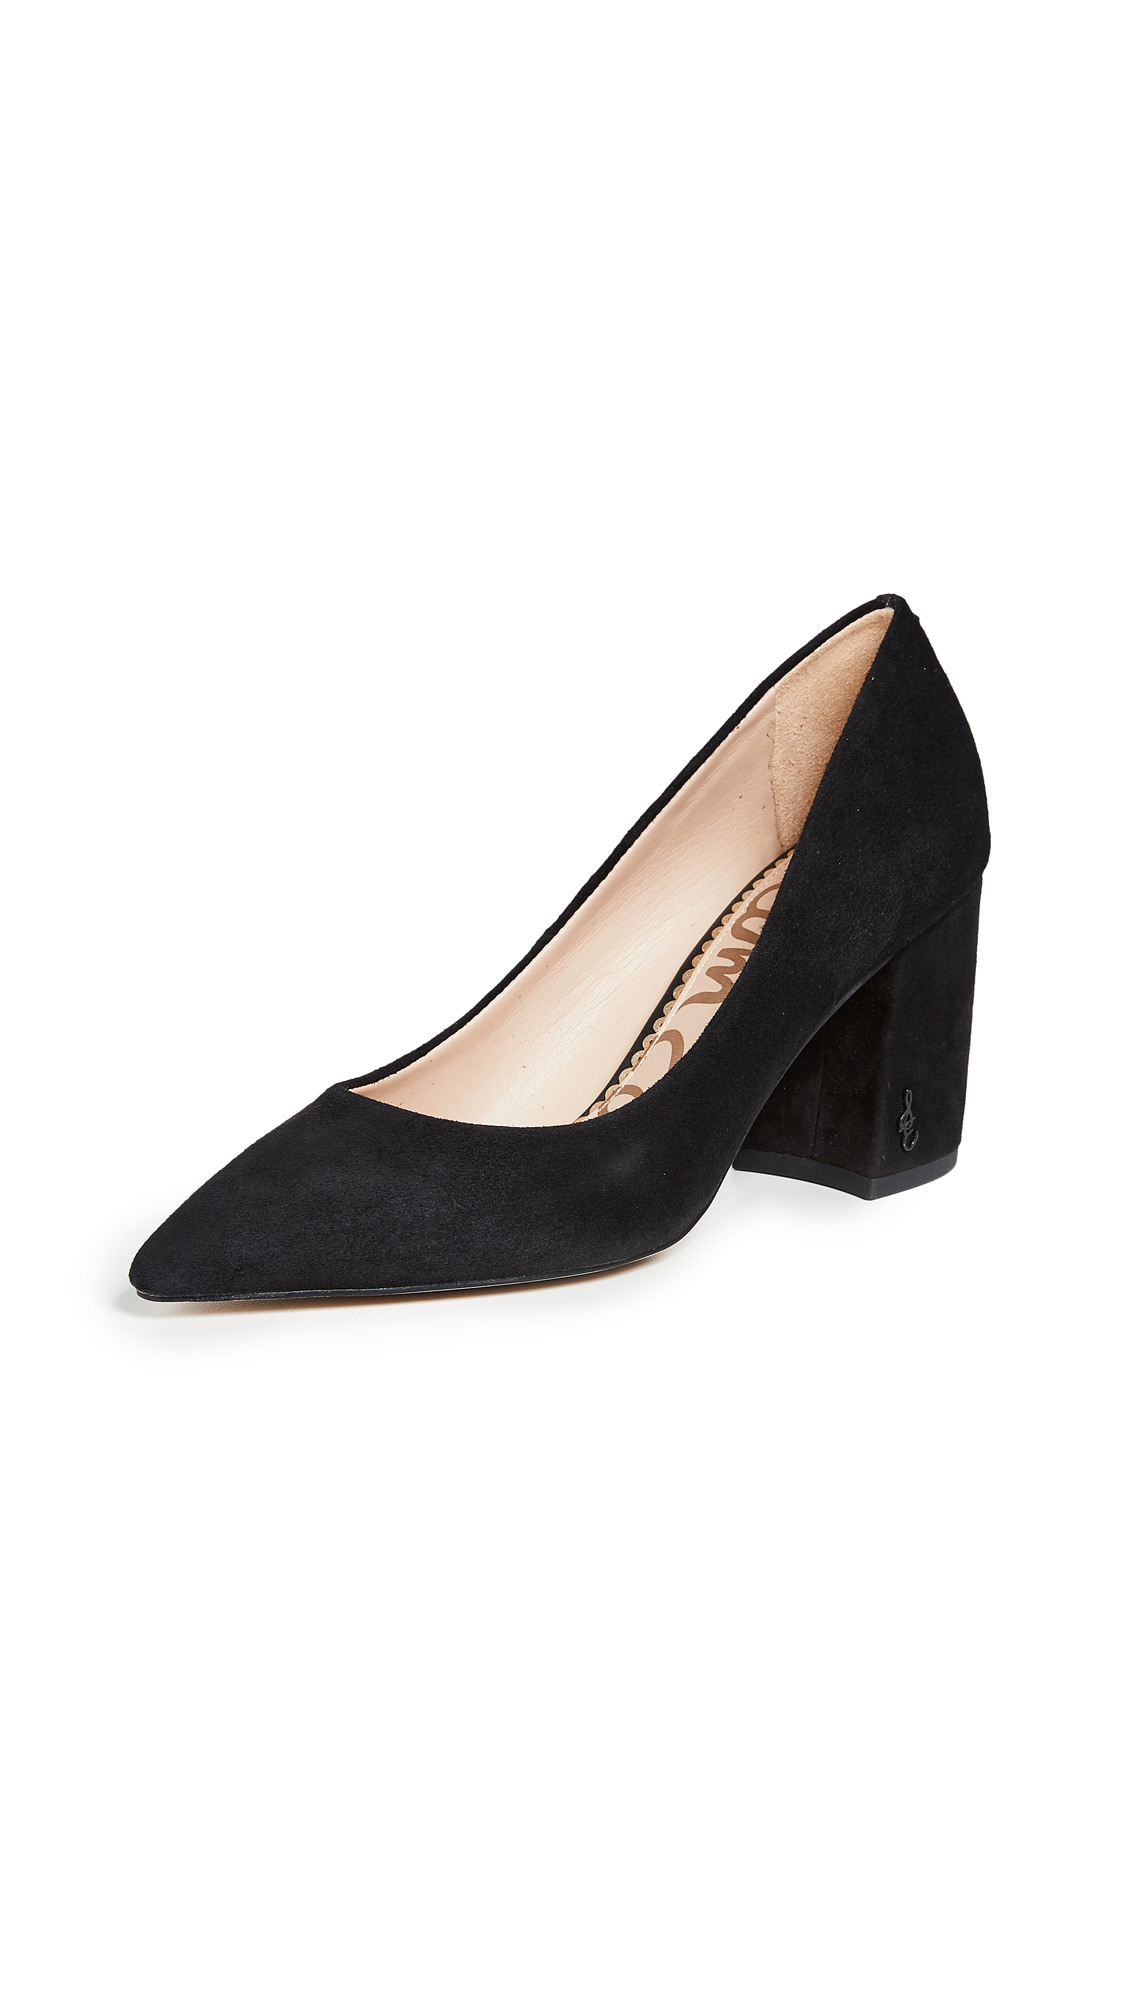 Sam Edelman Tatiana Pumps - Black